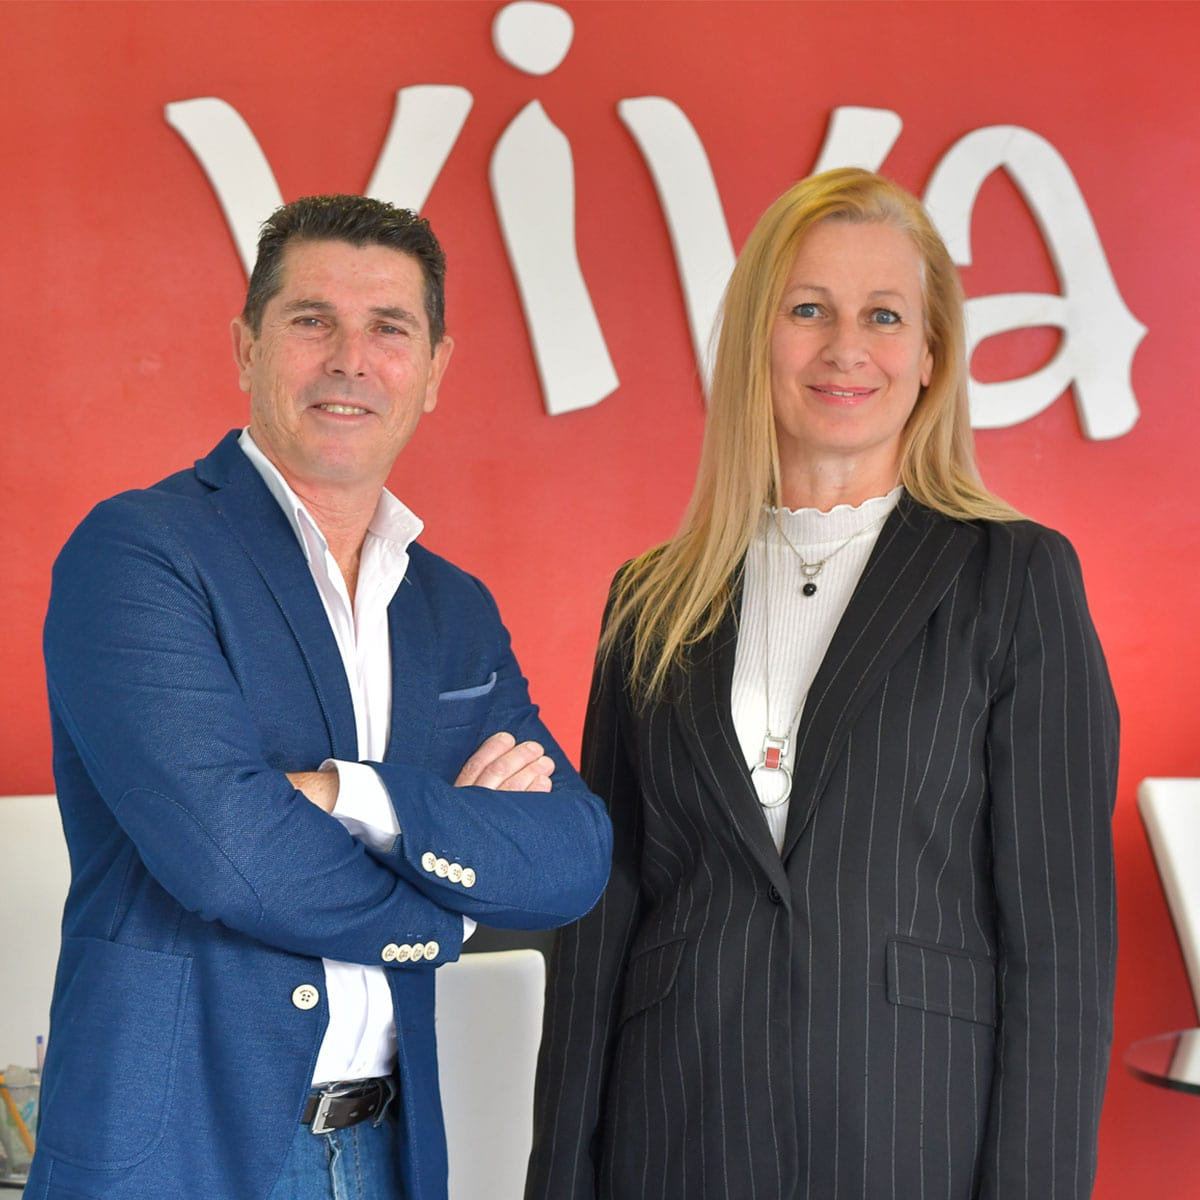 Meet the team - VIVA-Cánovas in Marbella Old Town will help you with all your rental enquiries